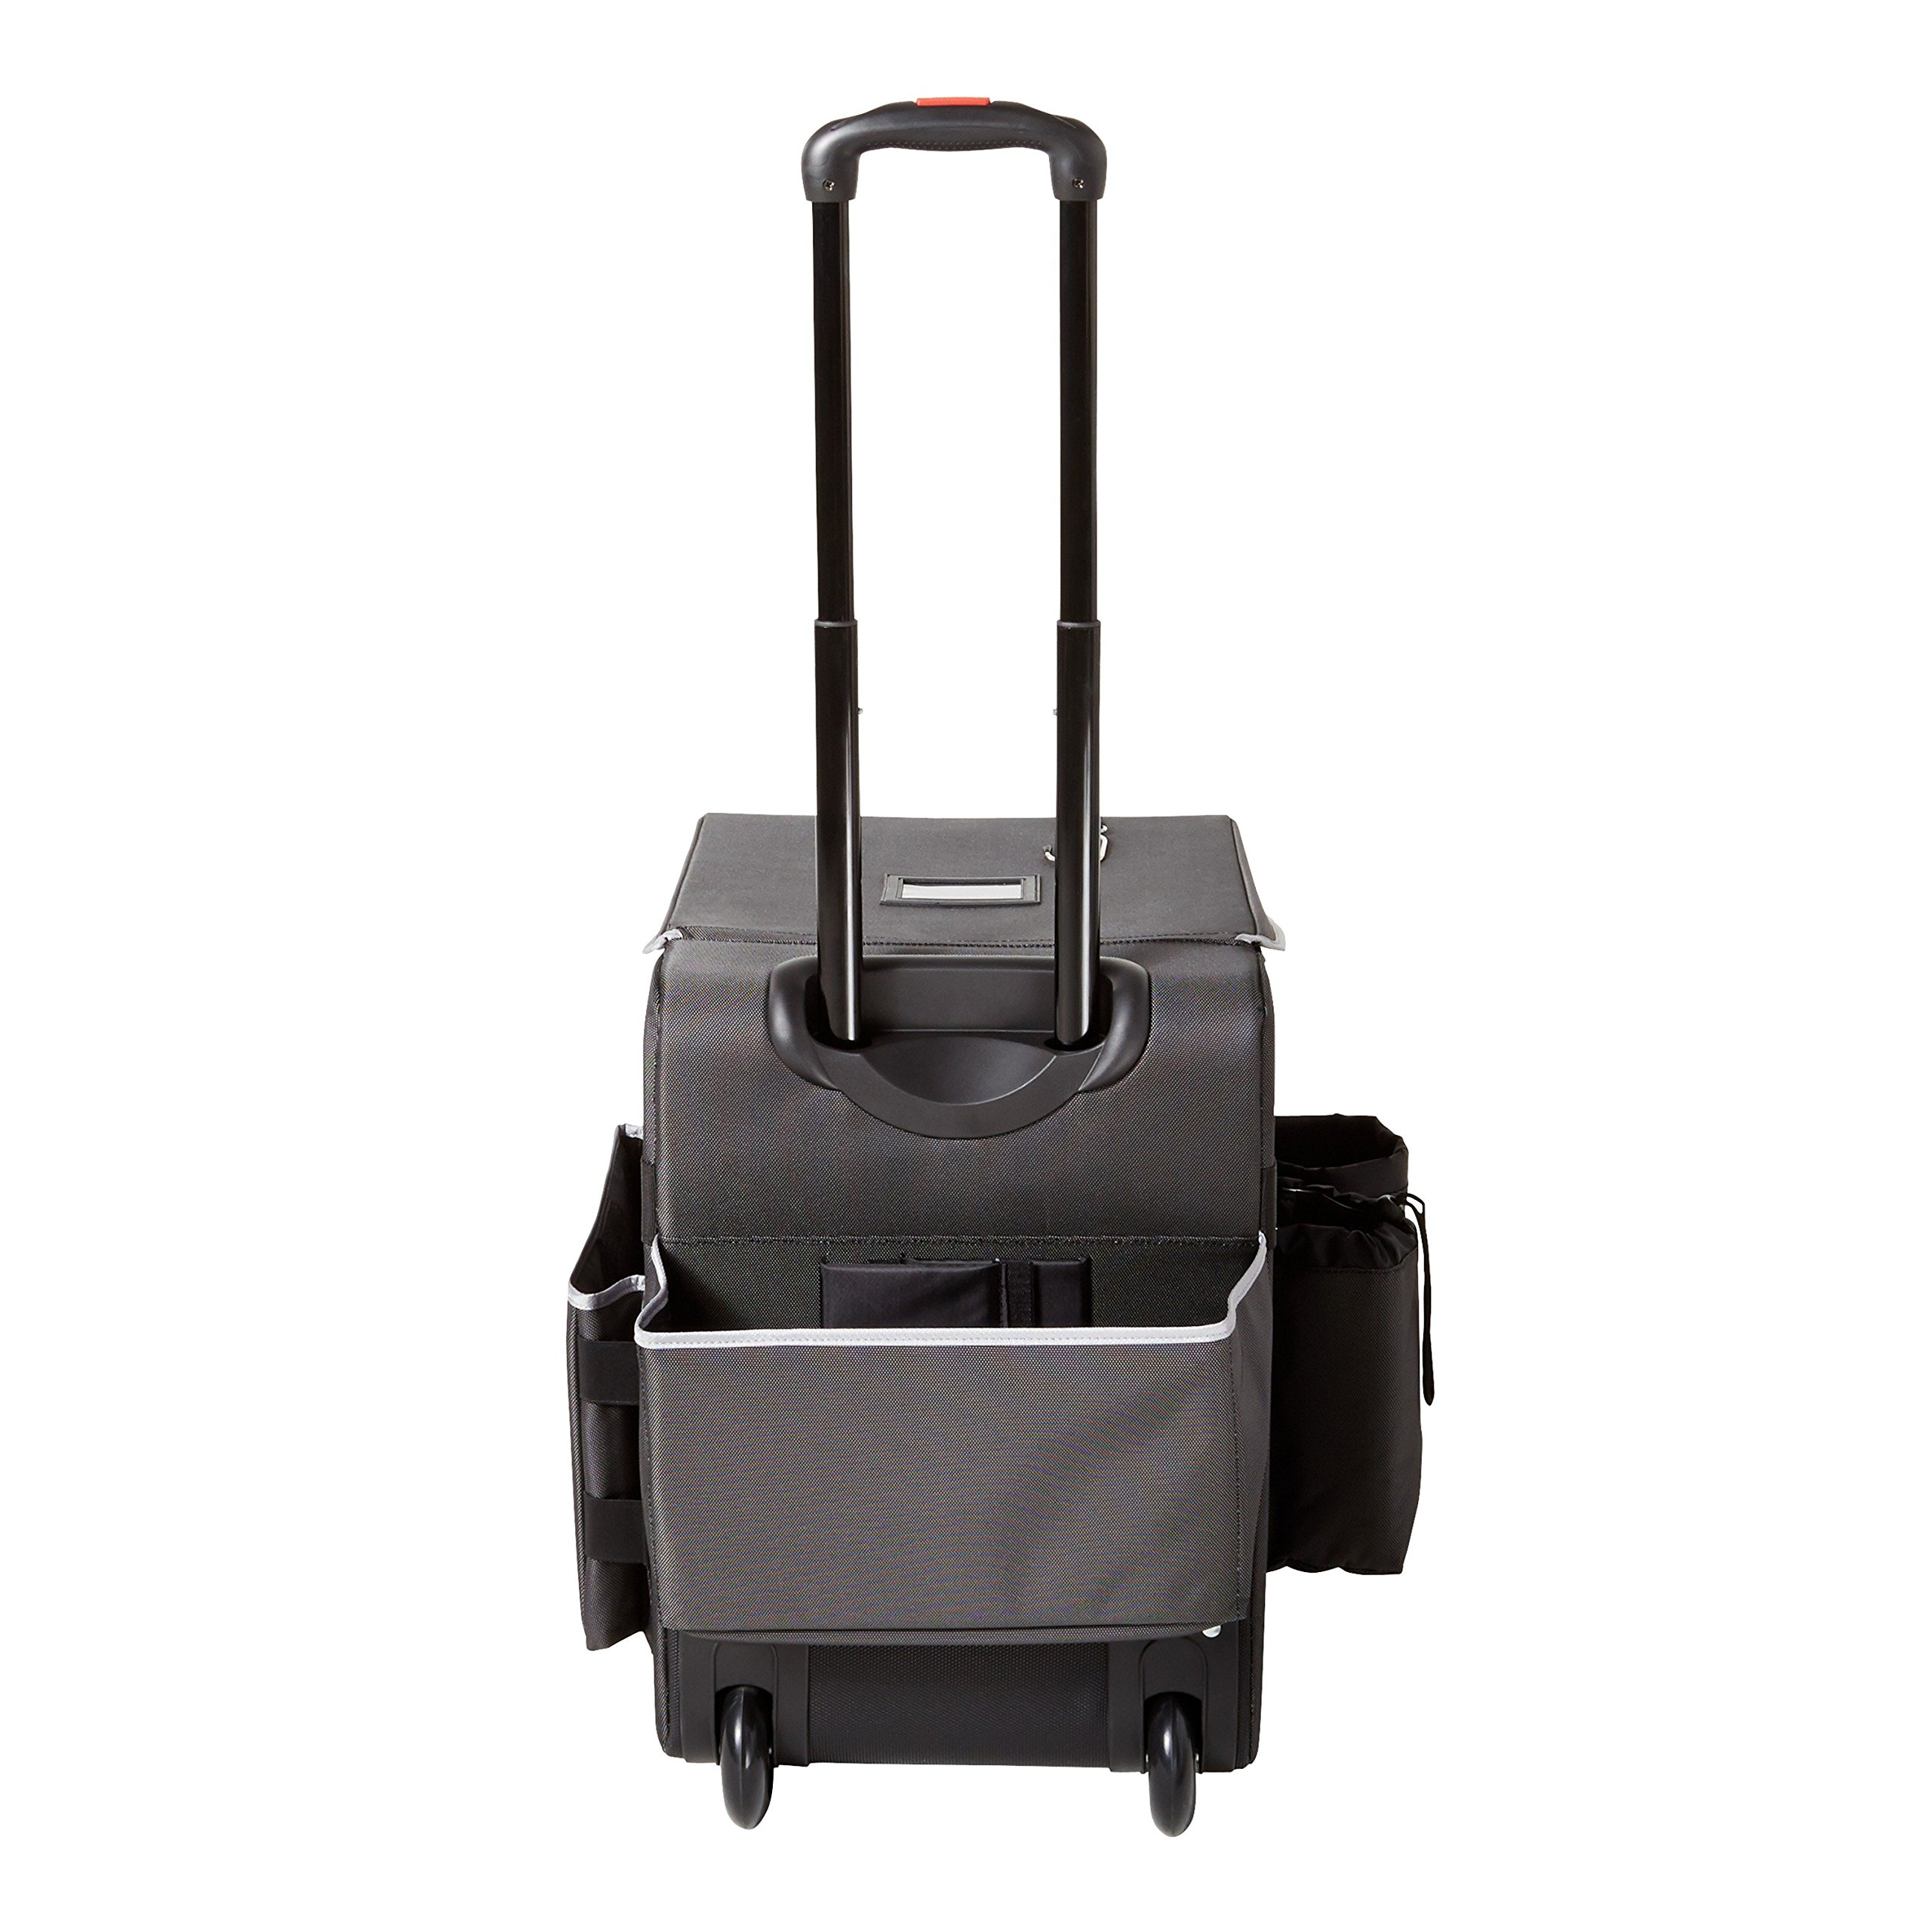 Rubbermaid Commercial Products Executive Janitorial Housekeeping Quick Cart, Medium, 1902466 by Rubbermaid Commercial Products (Image #2)